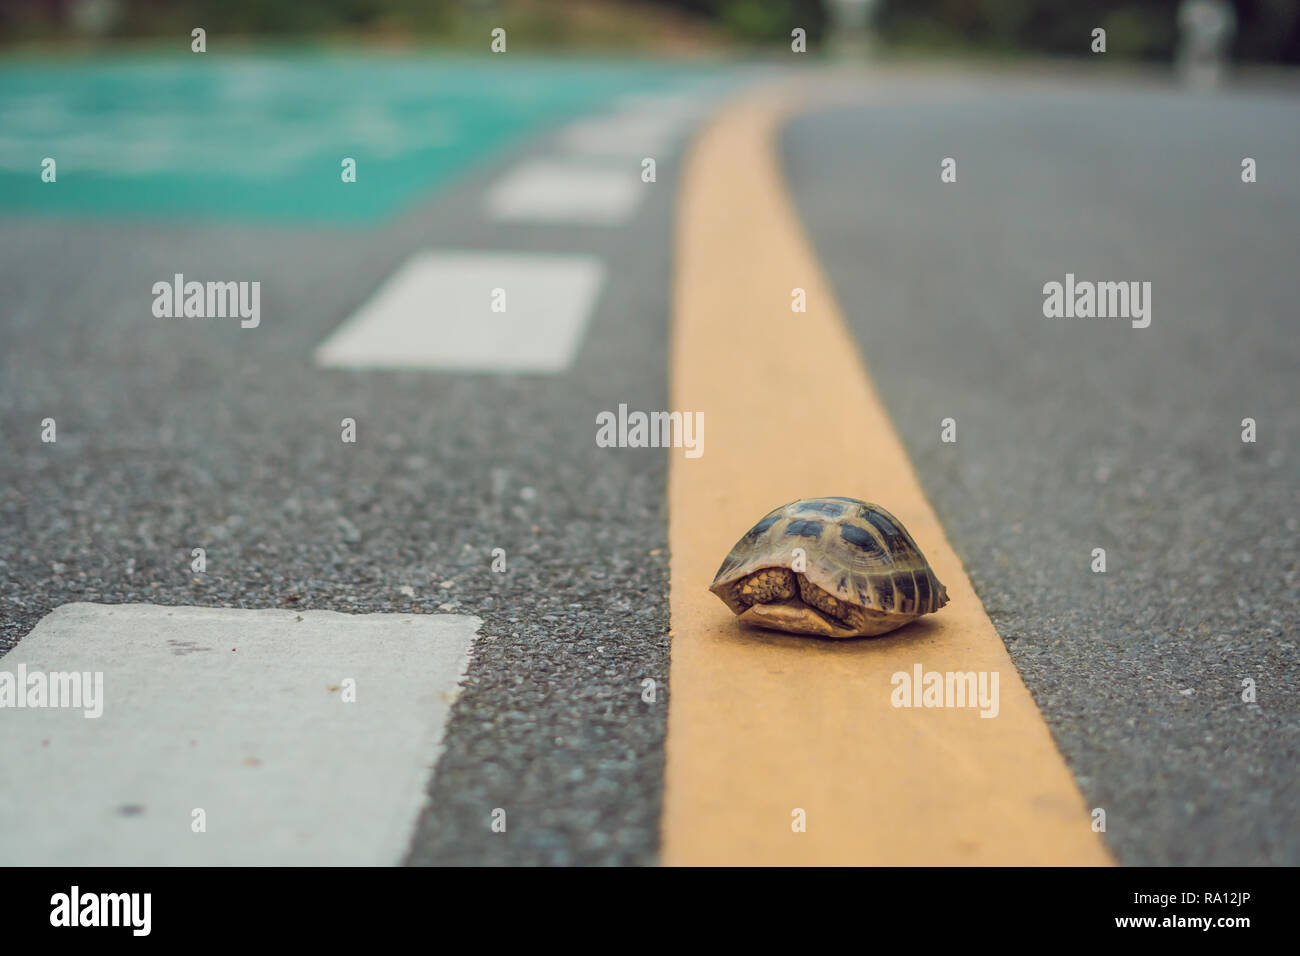 turtle walking down a track for running in a concept of racing or getting to a goal no matter how long it takes - Stock Image